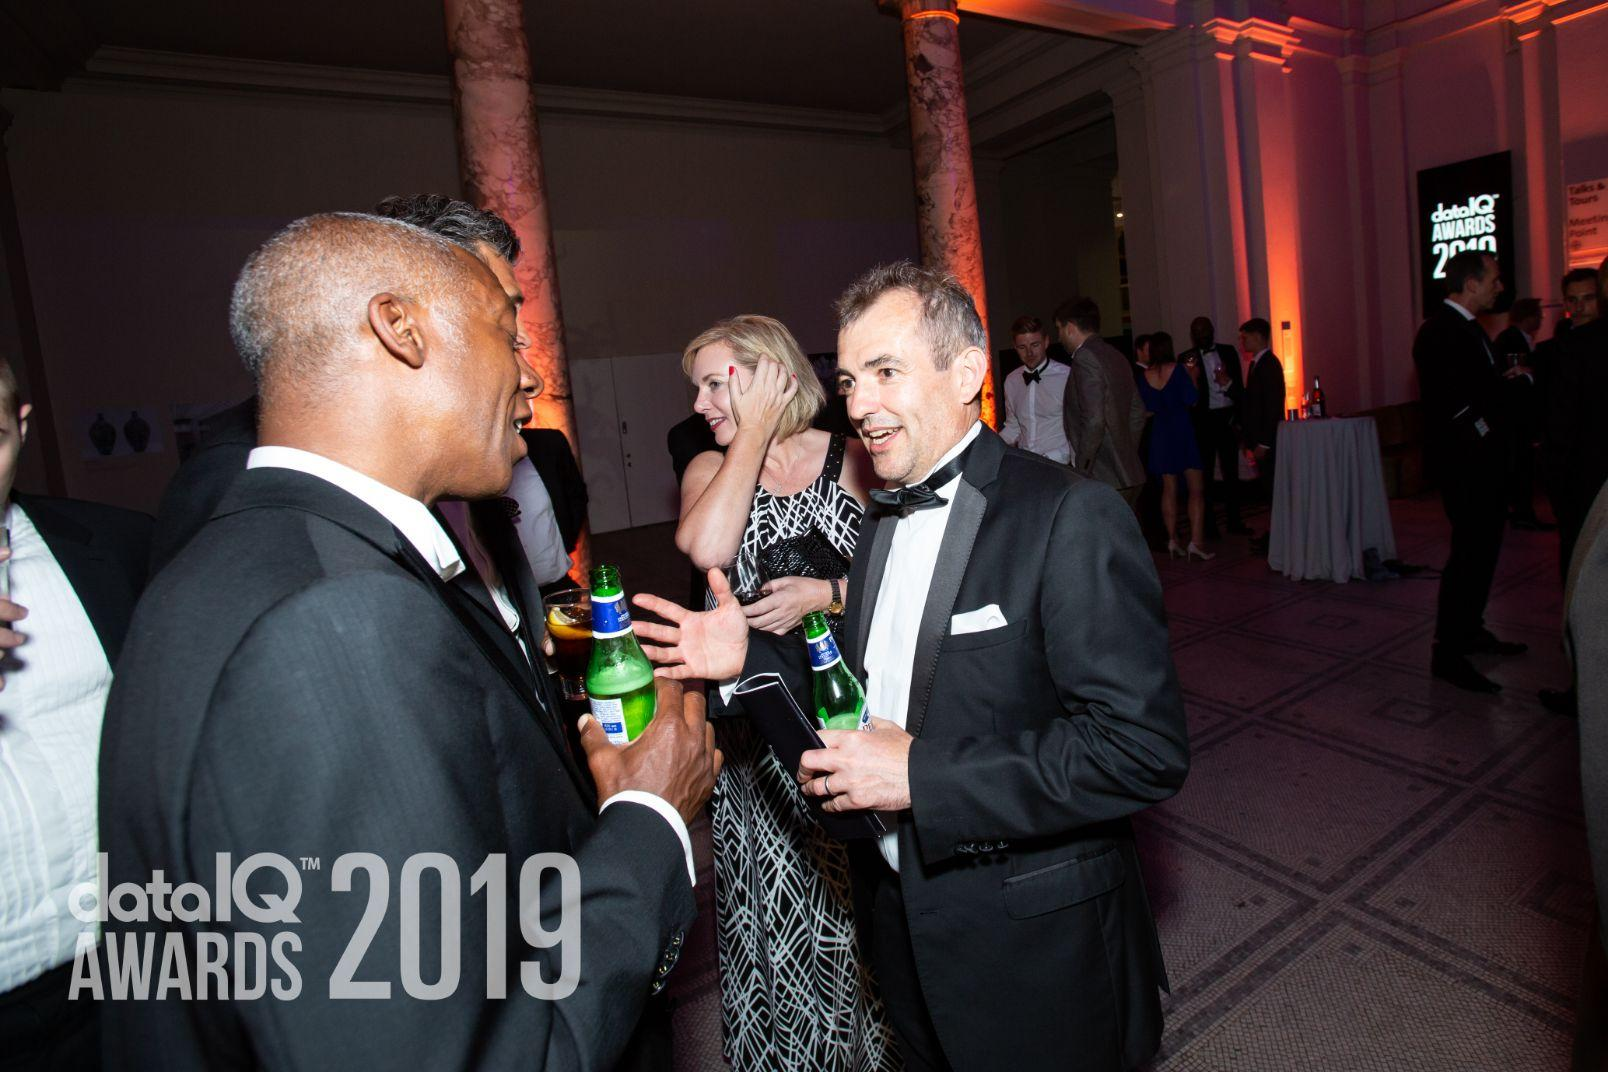 Awards 2019 Image 91